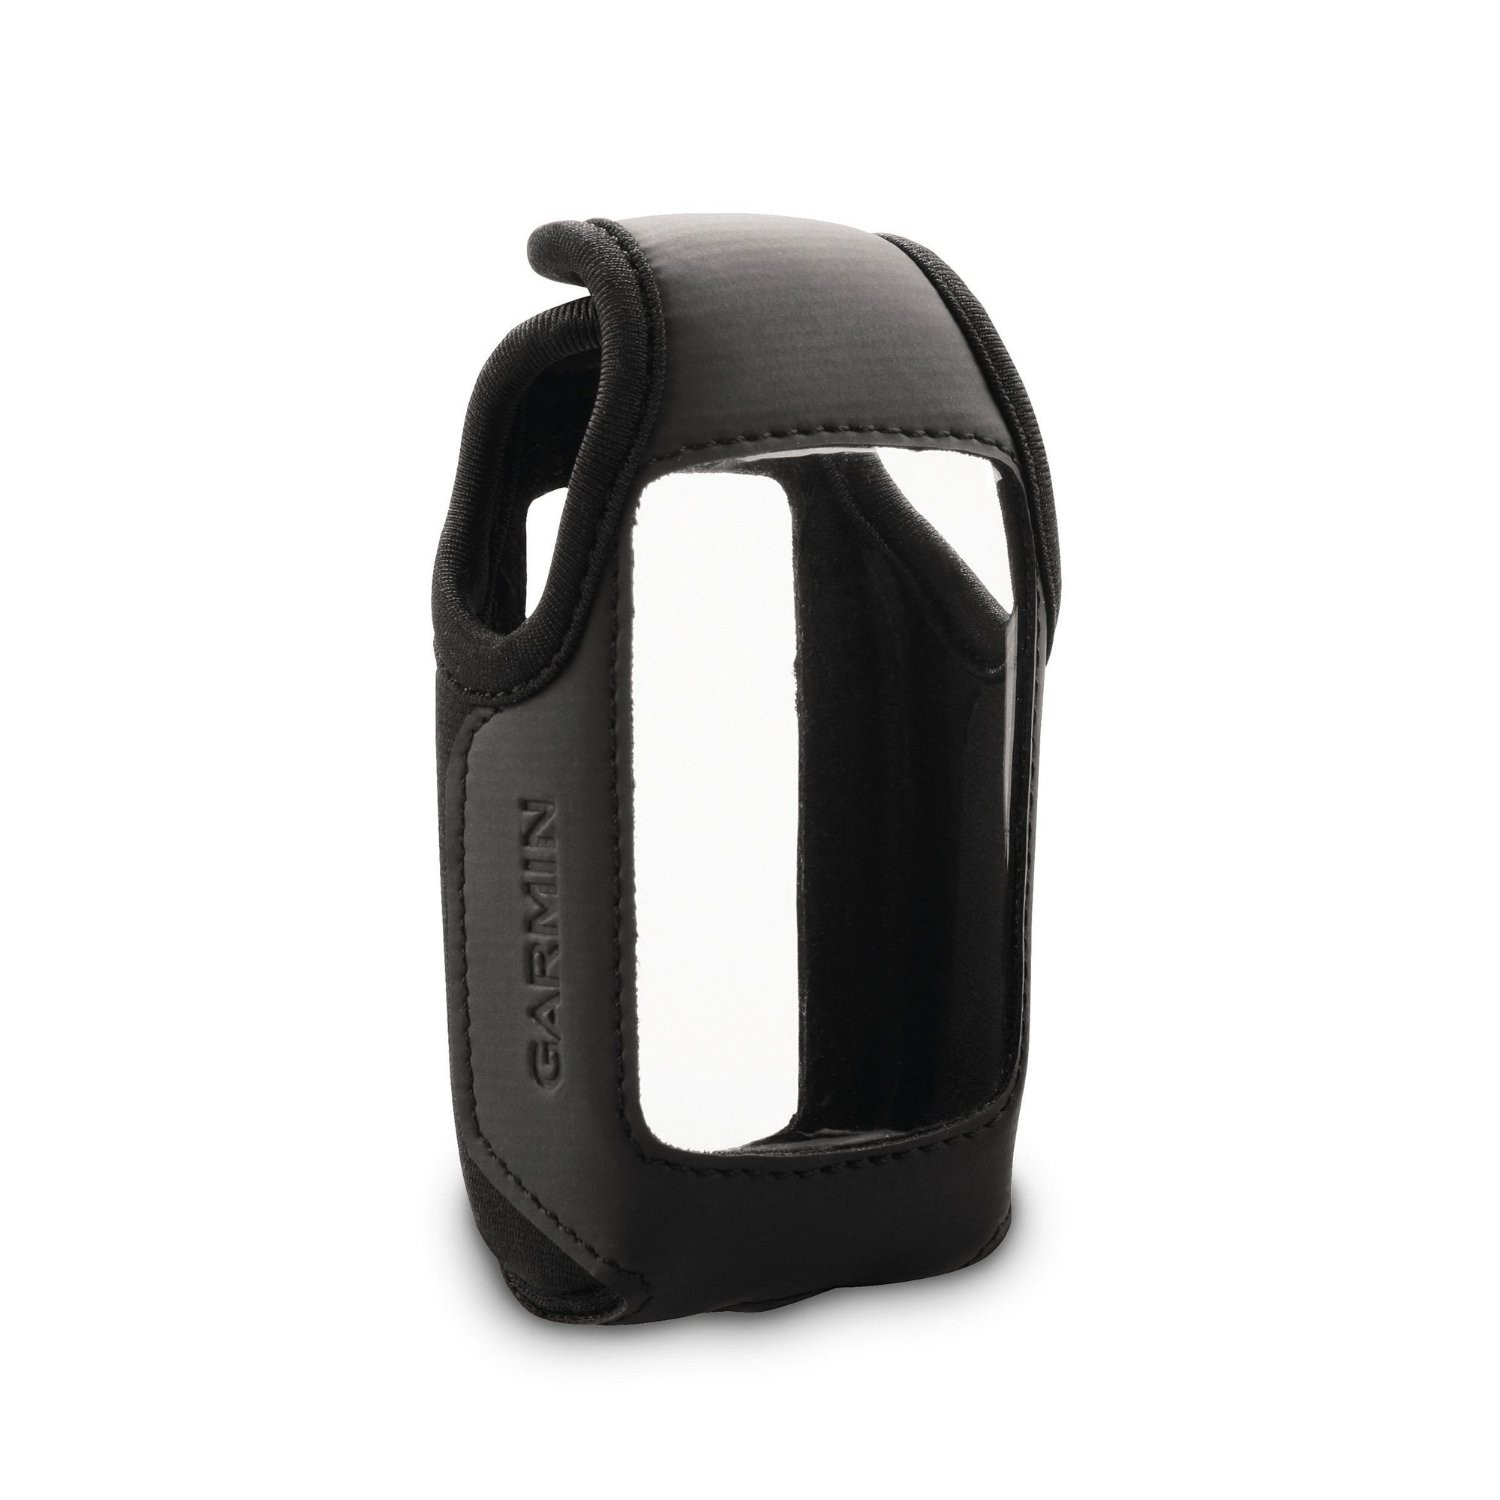 Housse de protection Gps Dakota - Garmin